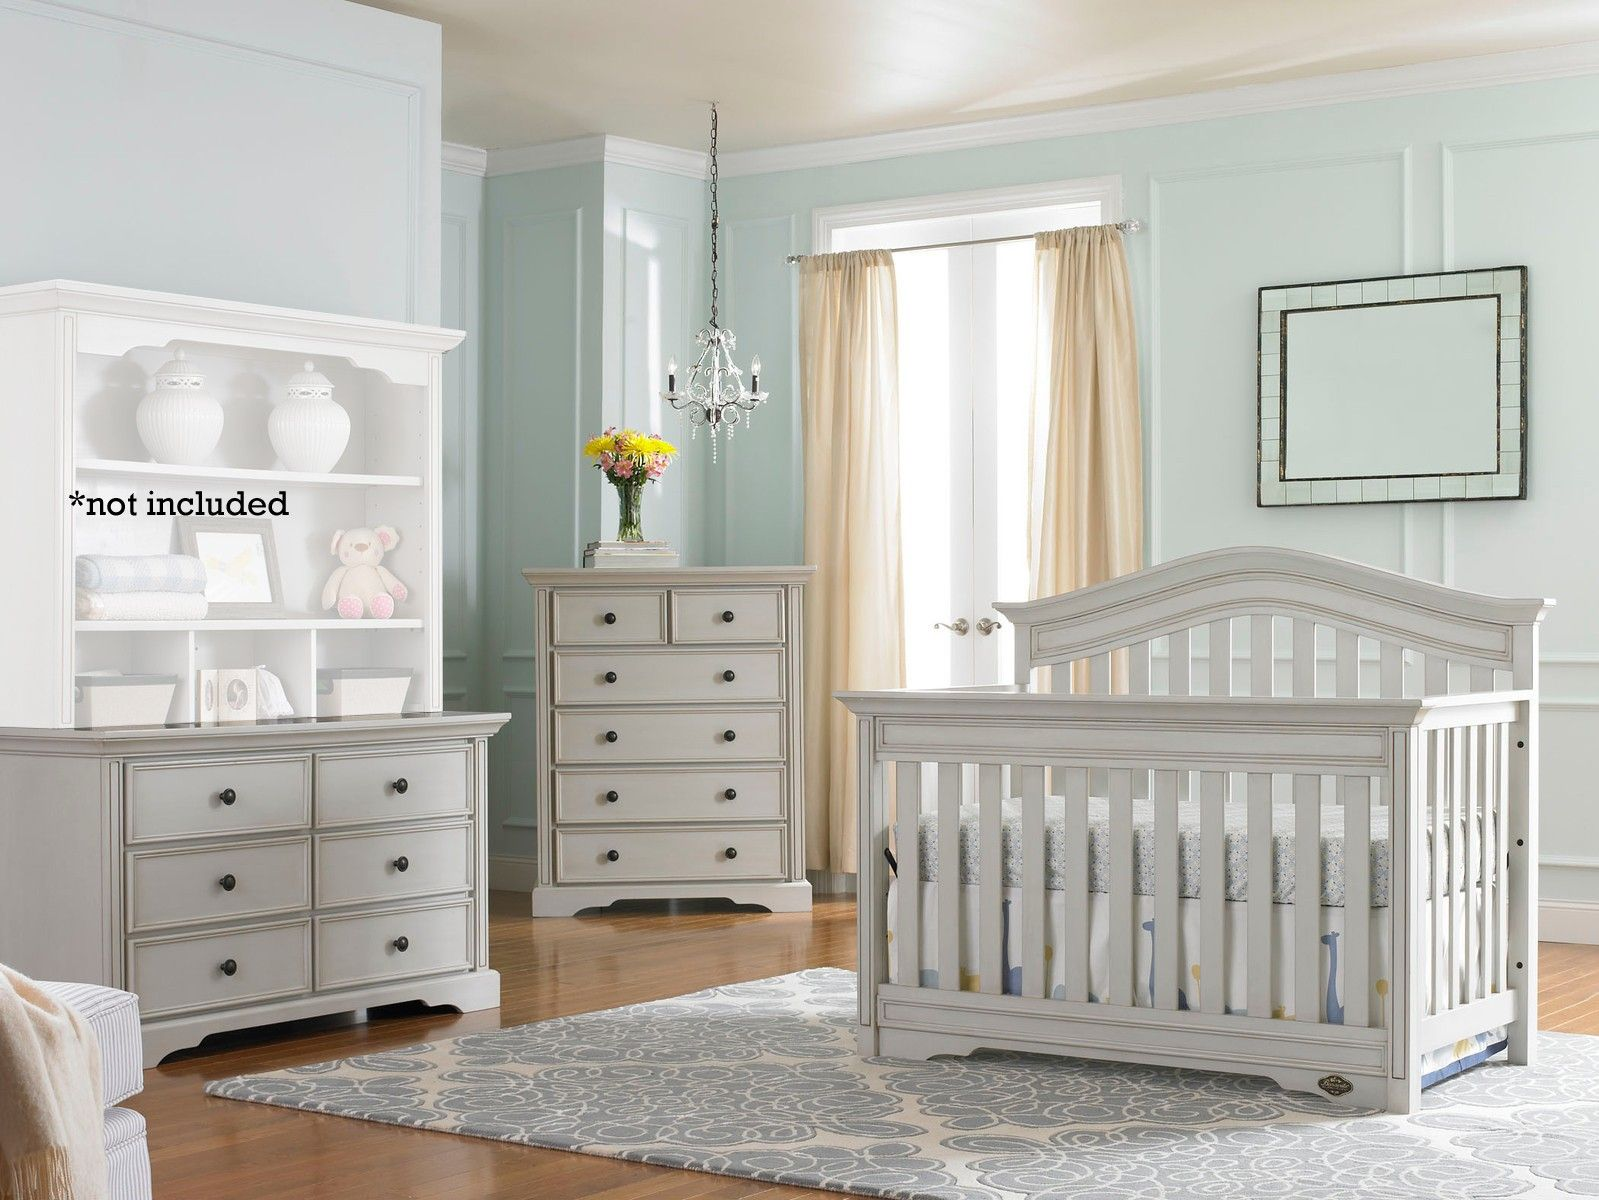 Bonavita Westfield 3 Piece Nursery Set in Linen Gray - Crib, Dresser ...